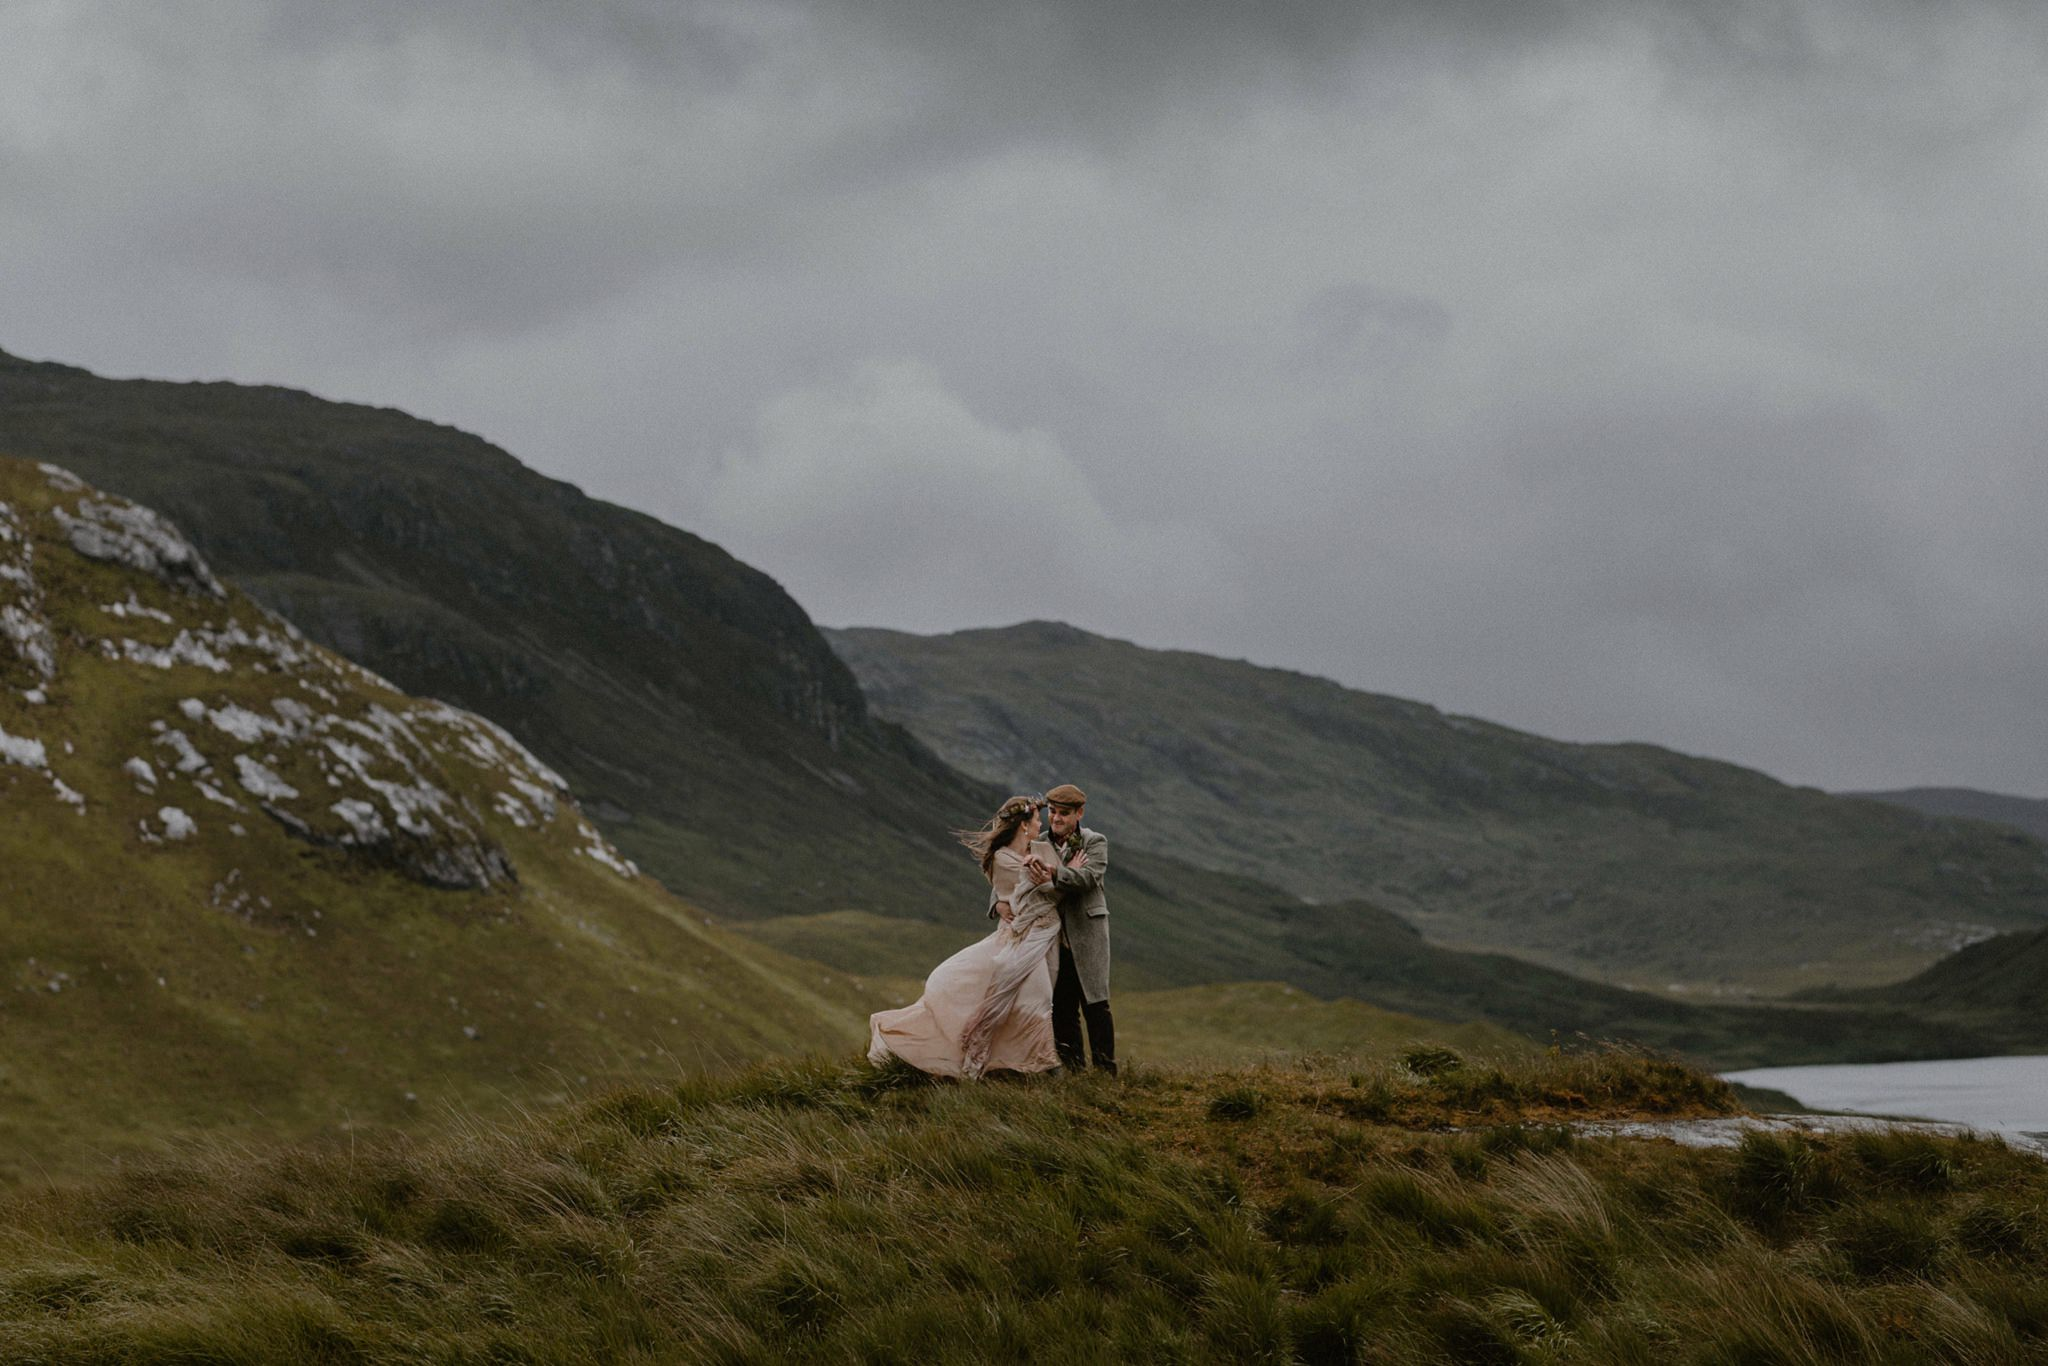 A new husband and wife braving the winds on the Inner Hebrides of Scotland